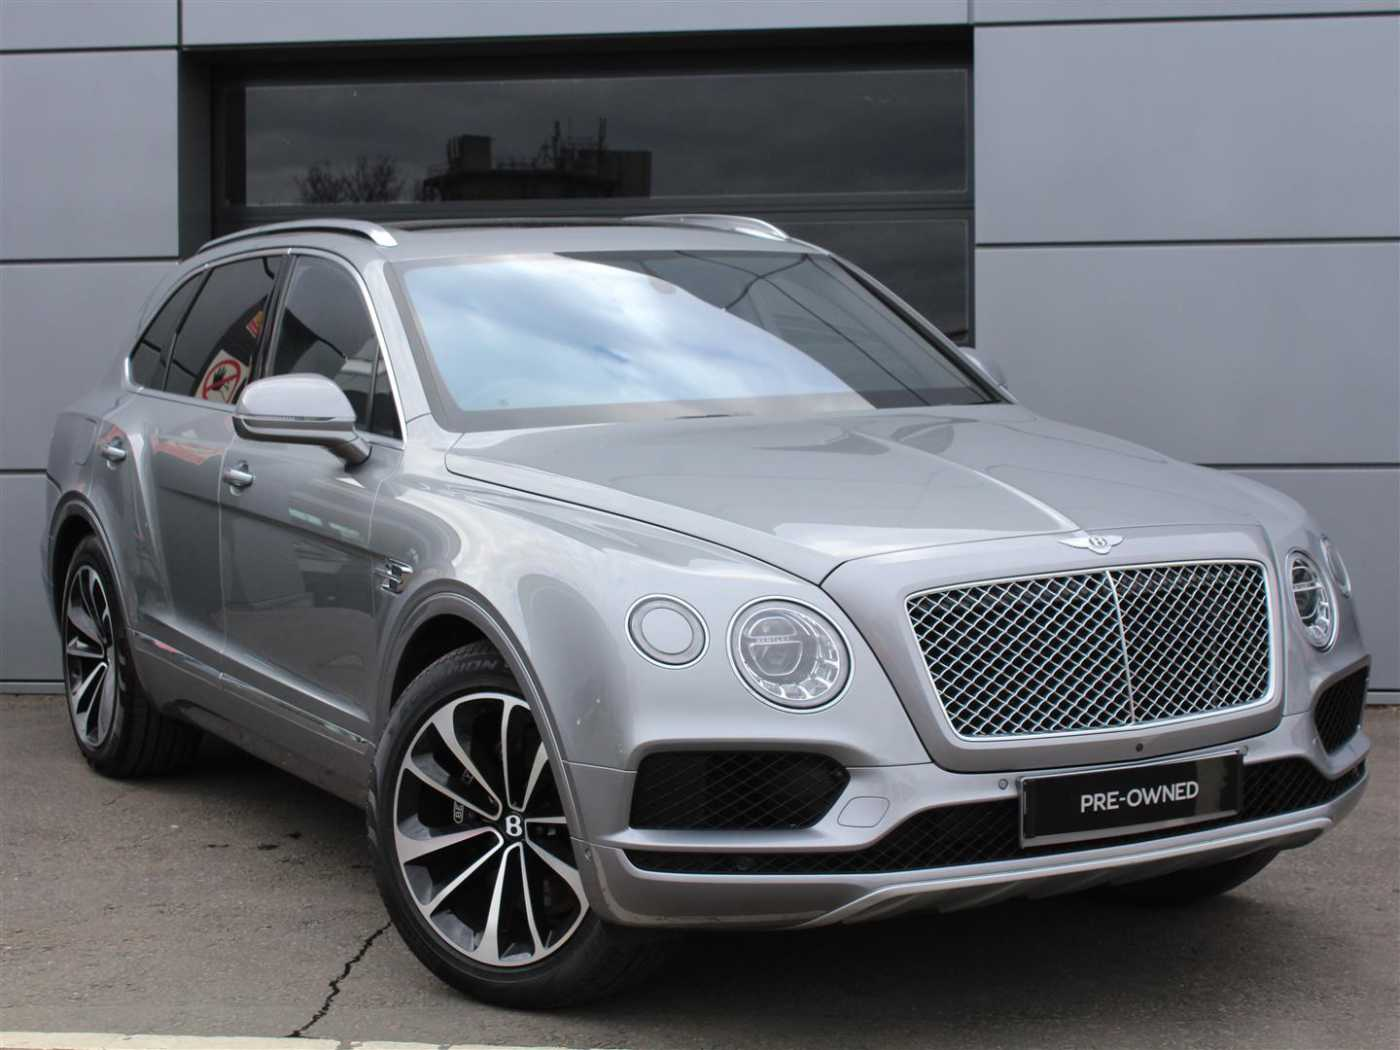 bentley bentayga used car for sale in hamilton